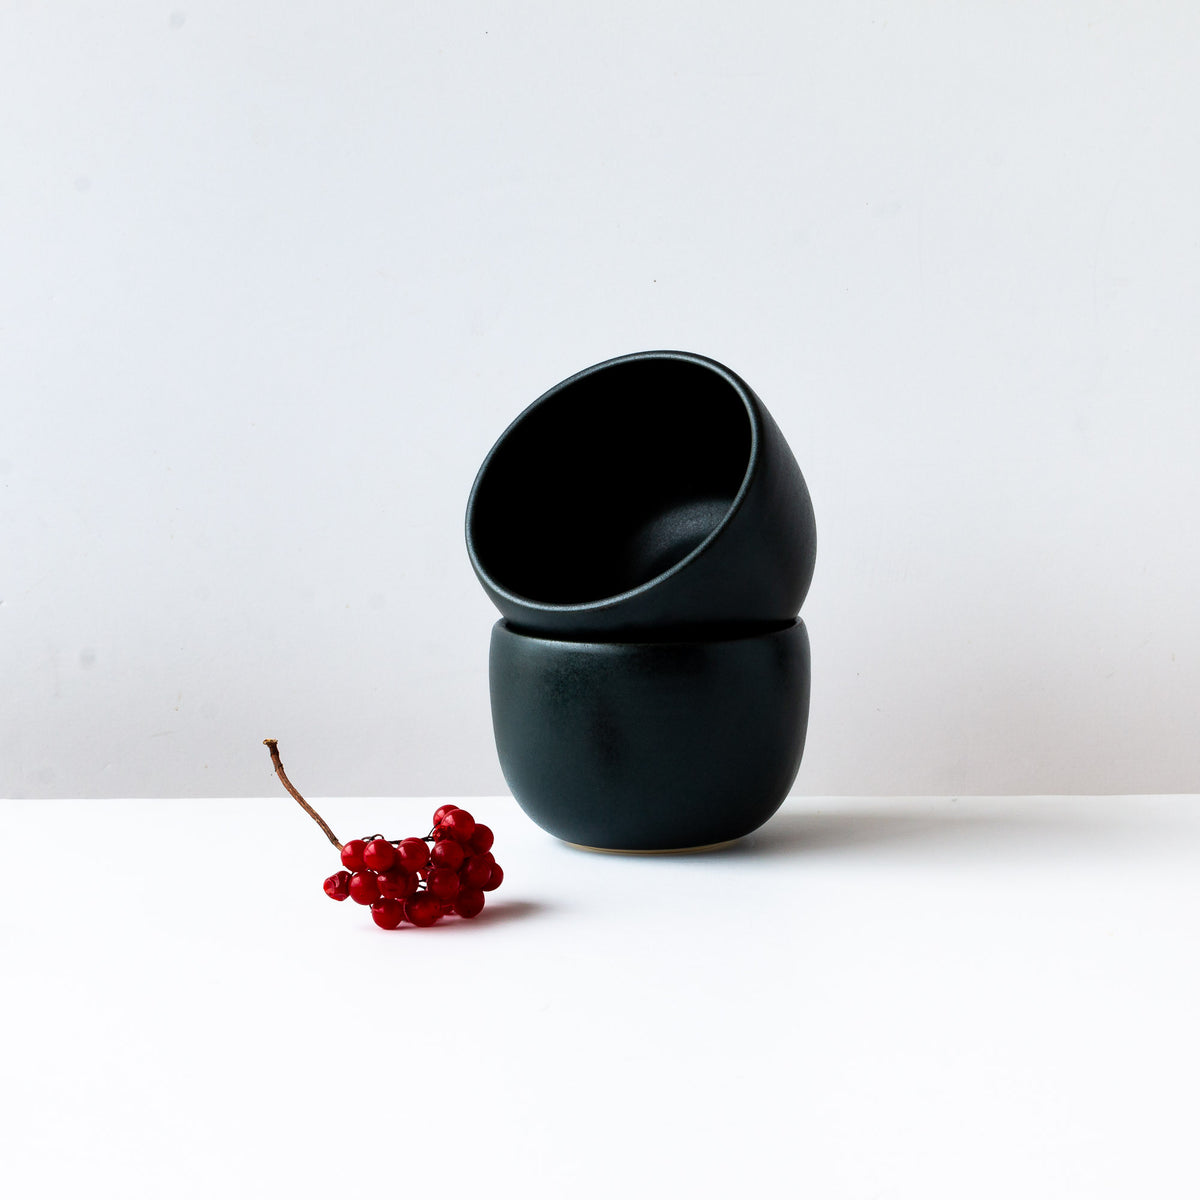 Two Black Satin Glazed Porcelain Soup Bowls - Sold by Chic & Basta